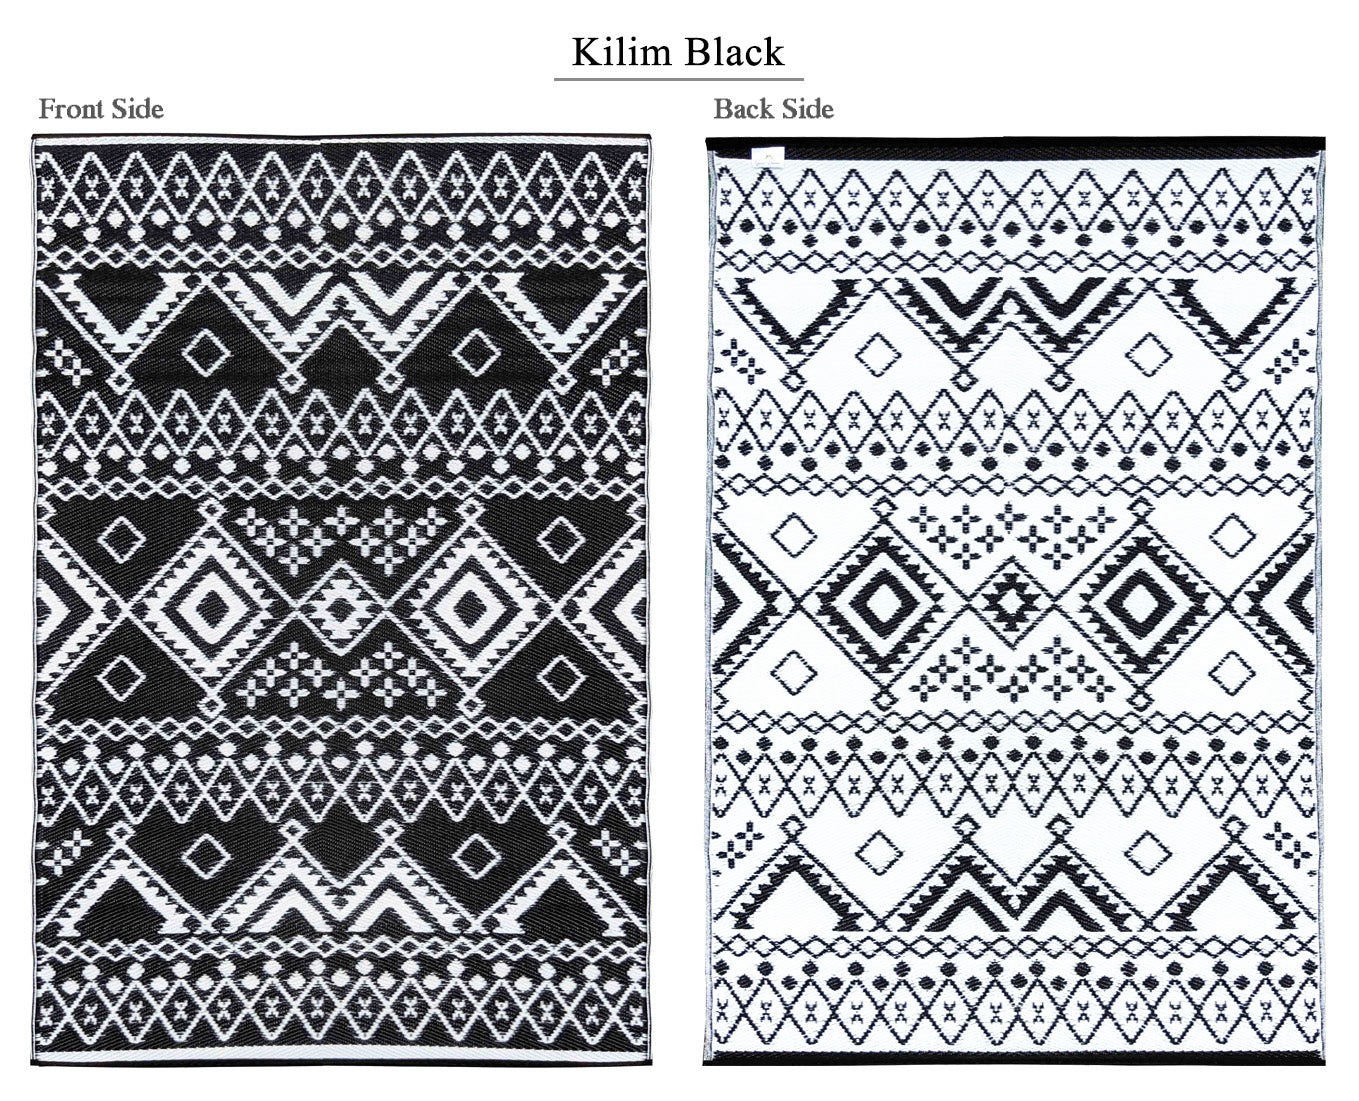 Kilim Outdoor Recycled Plastic Rug (Black/White)